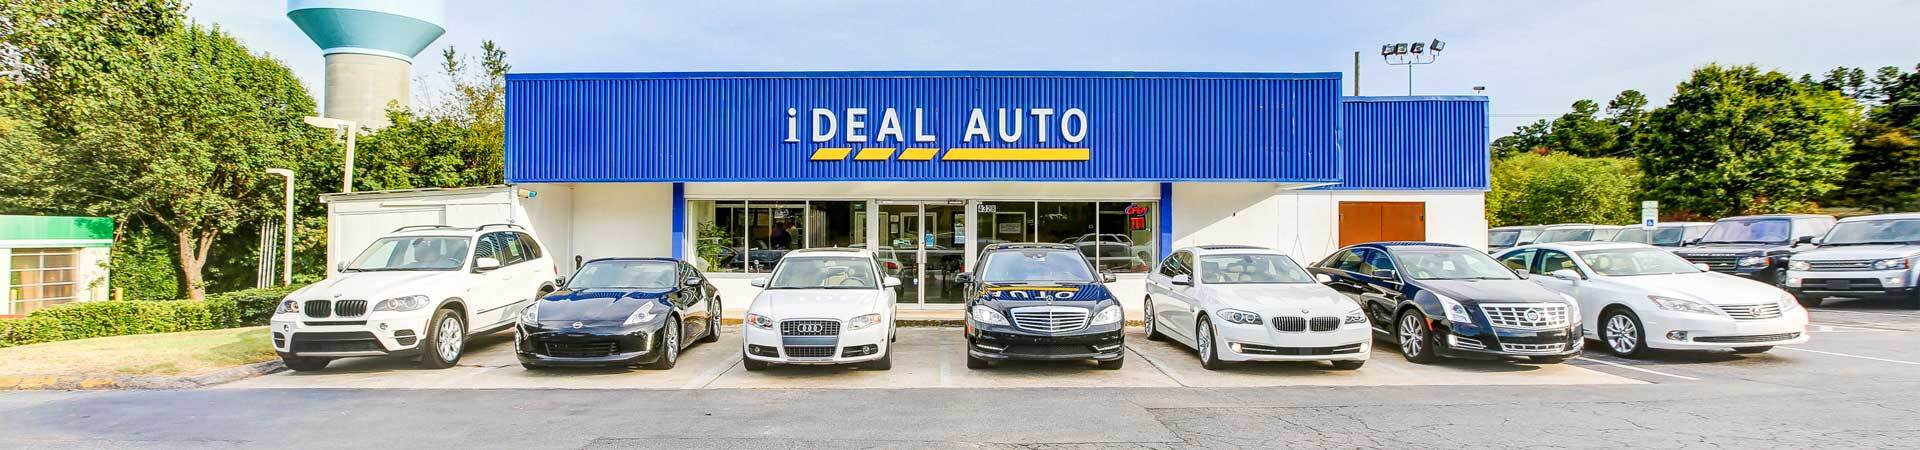 Pre-Owned Car Dealership Raleigh NC   iDeal Auto